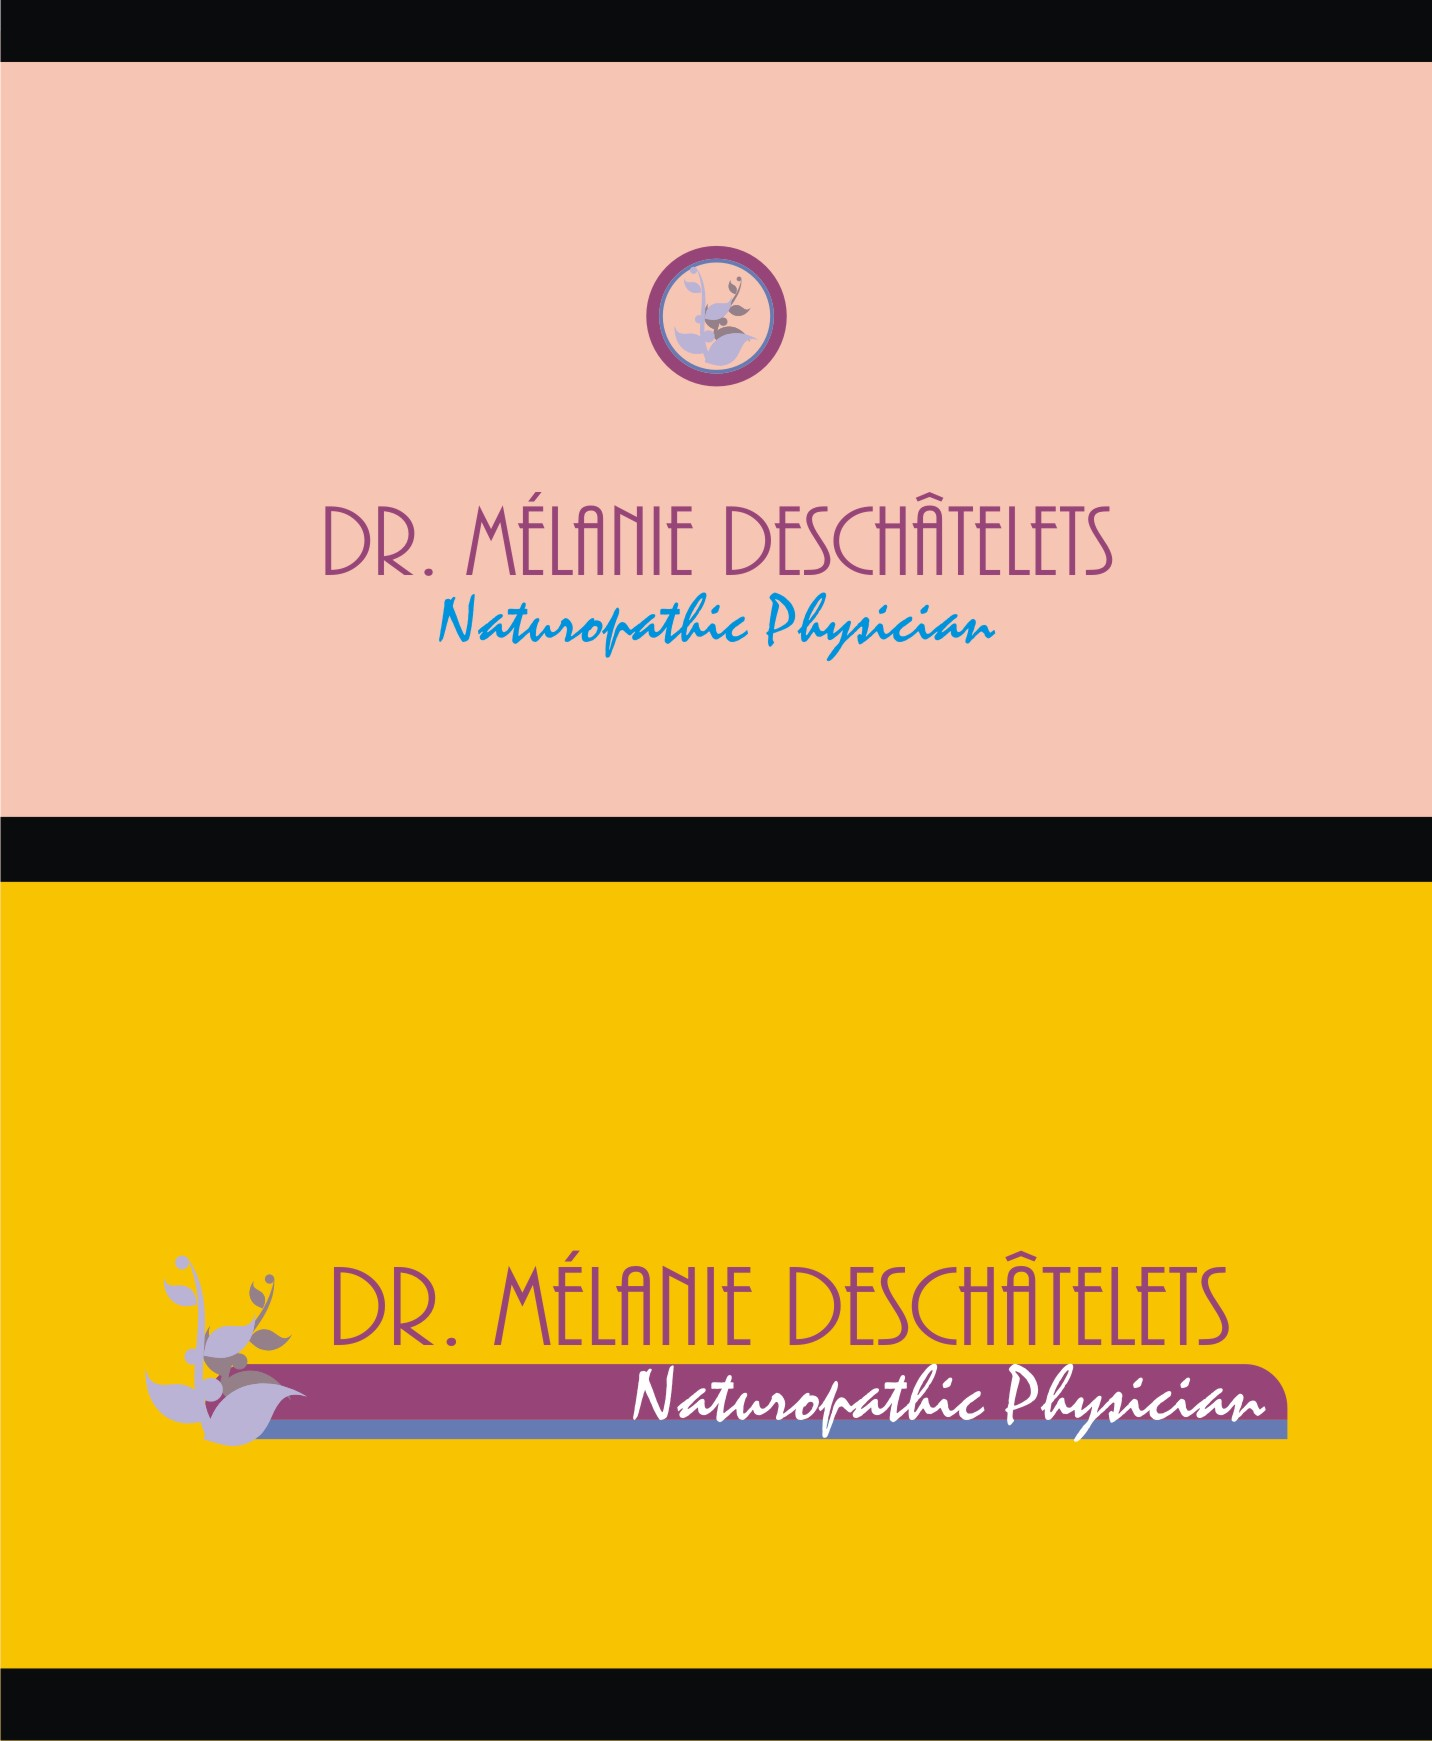 Logo Design by Private User - Entry No. 226 in the Logo Design Contest Artistic Logo Design for Dr Mélanie DesChâtelets.